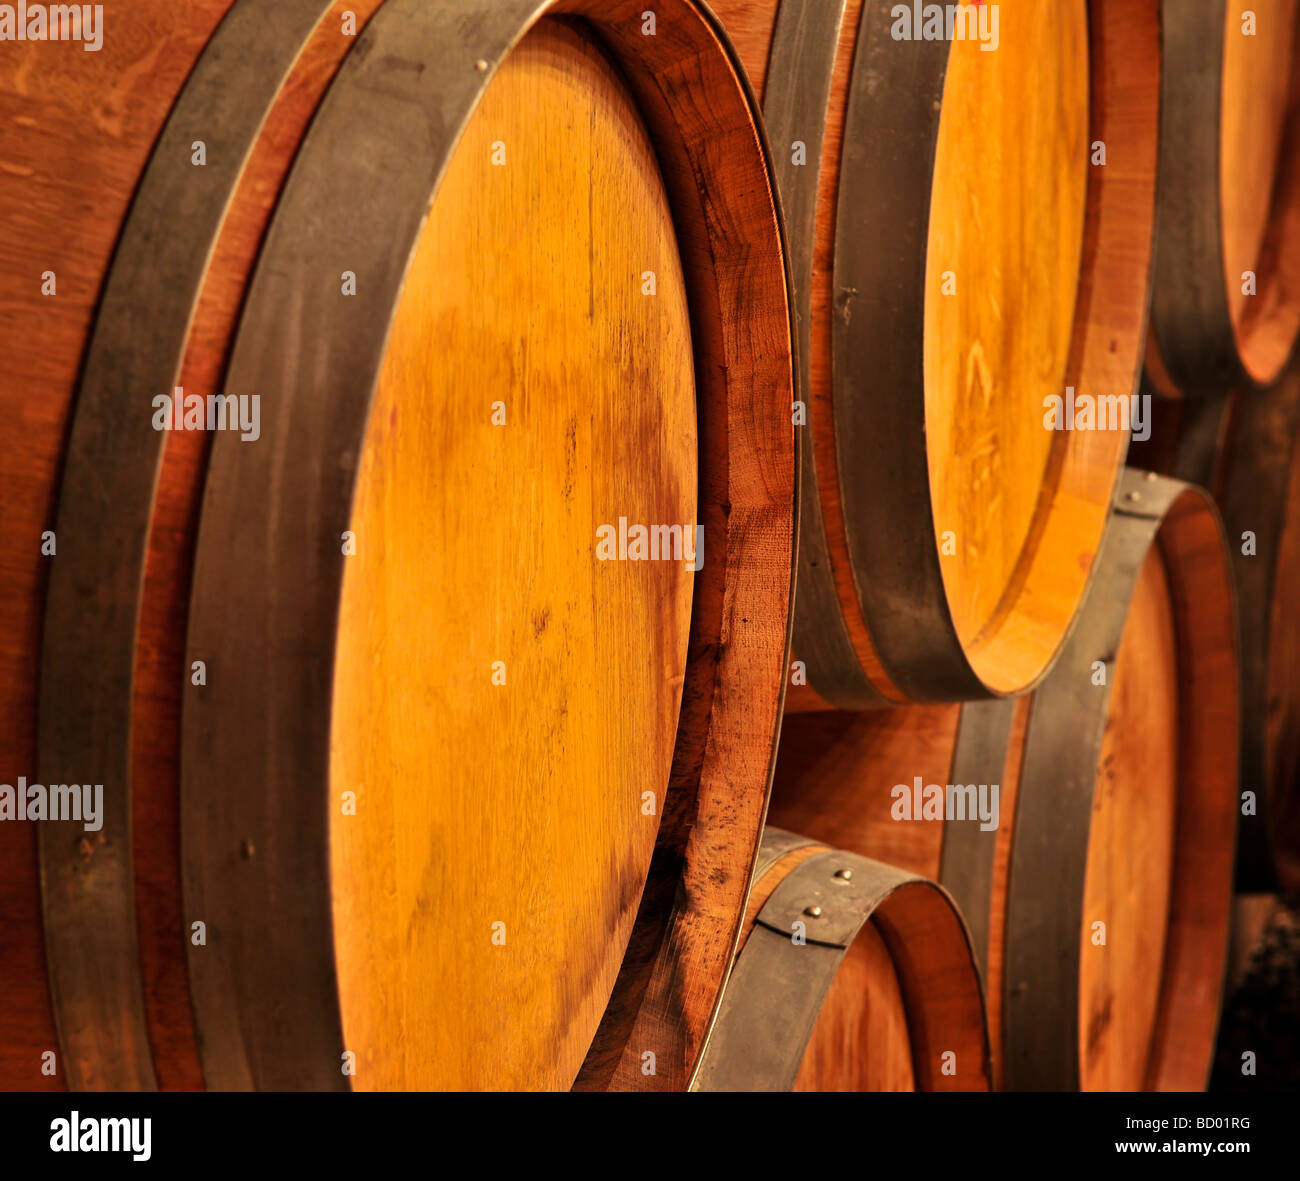 oak wine barrels. stacked oak wine barrels in winery cellar i